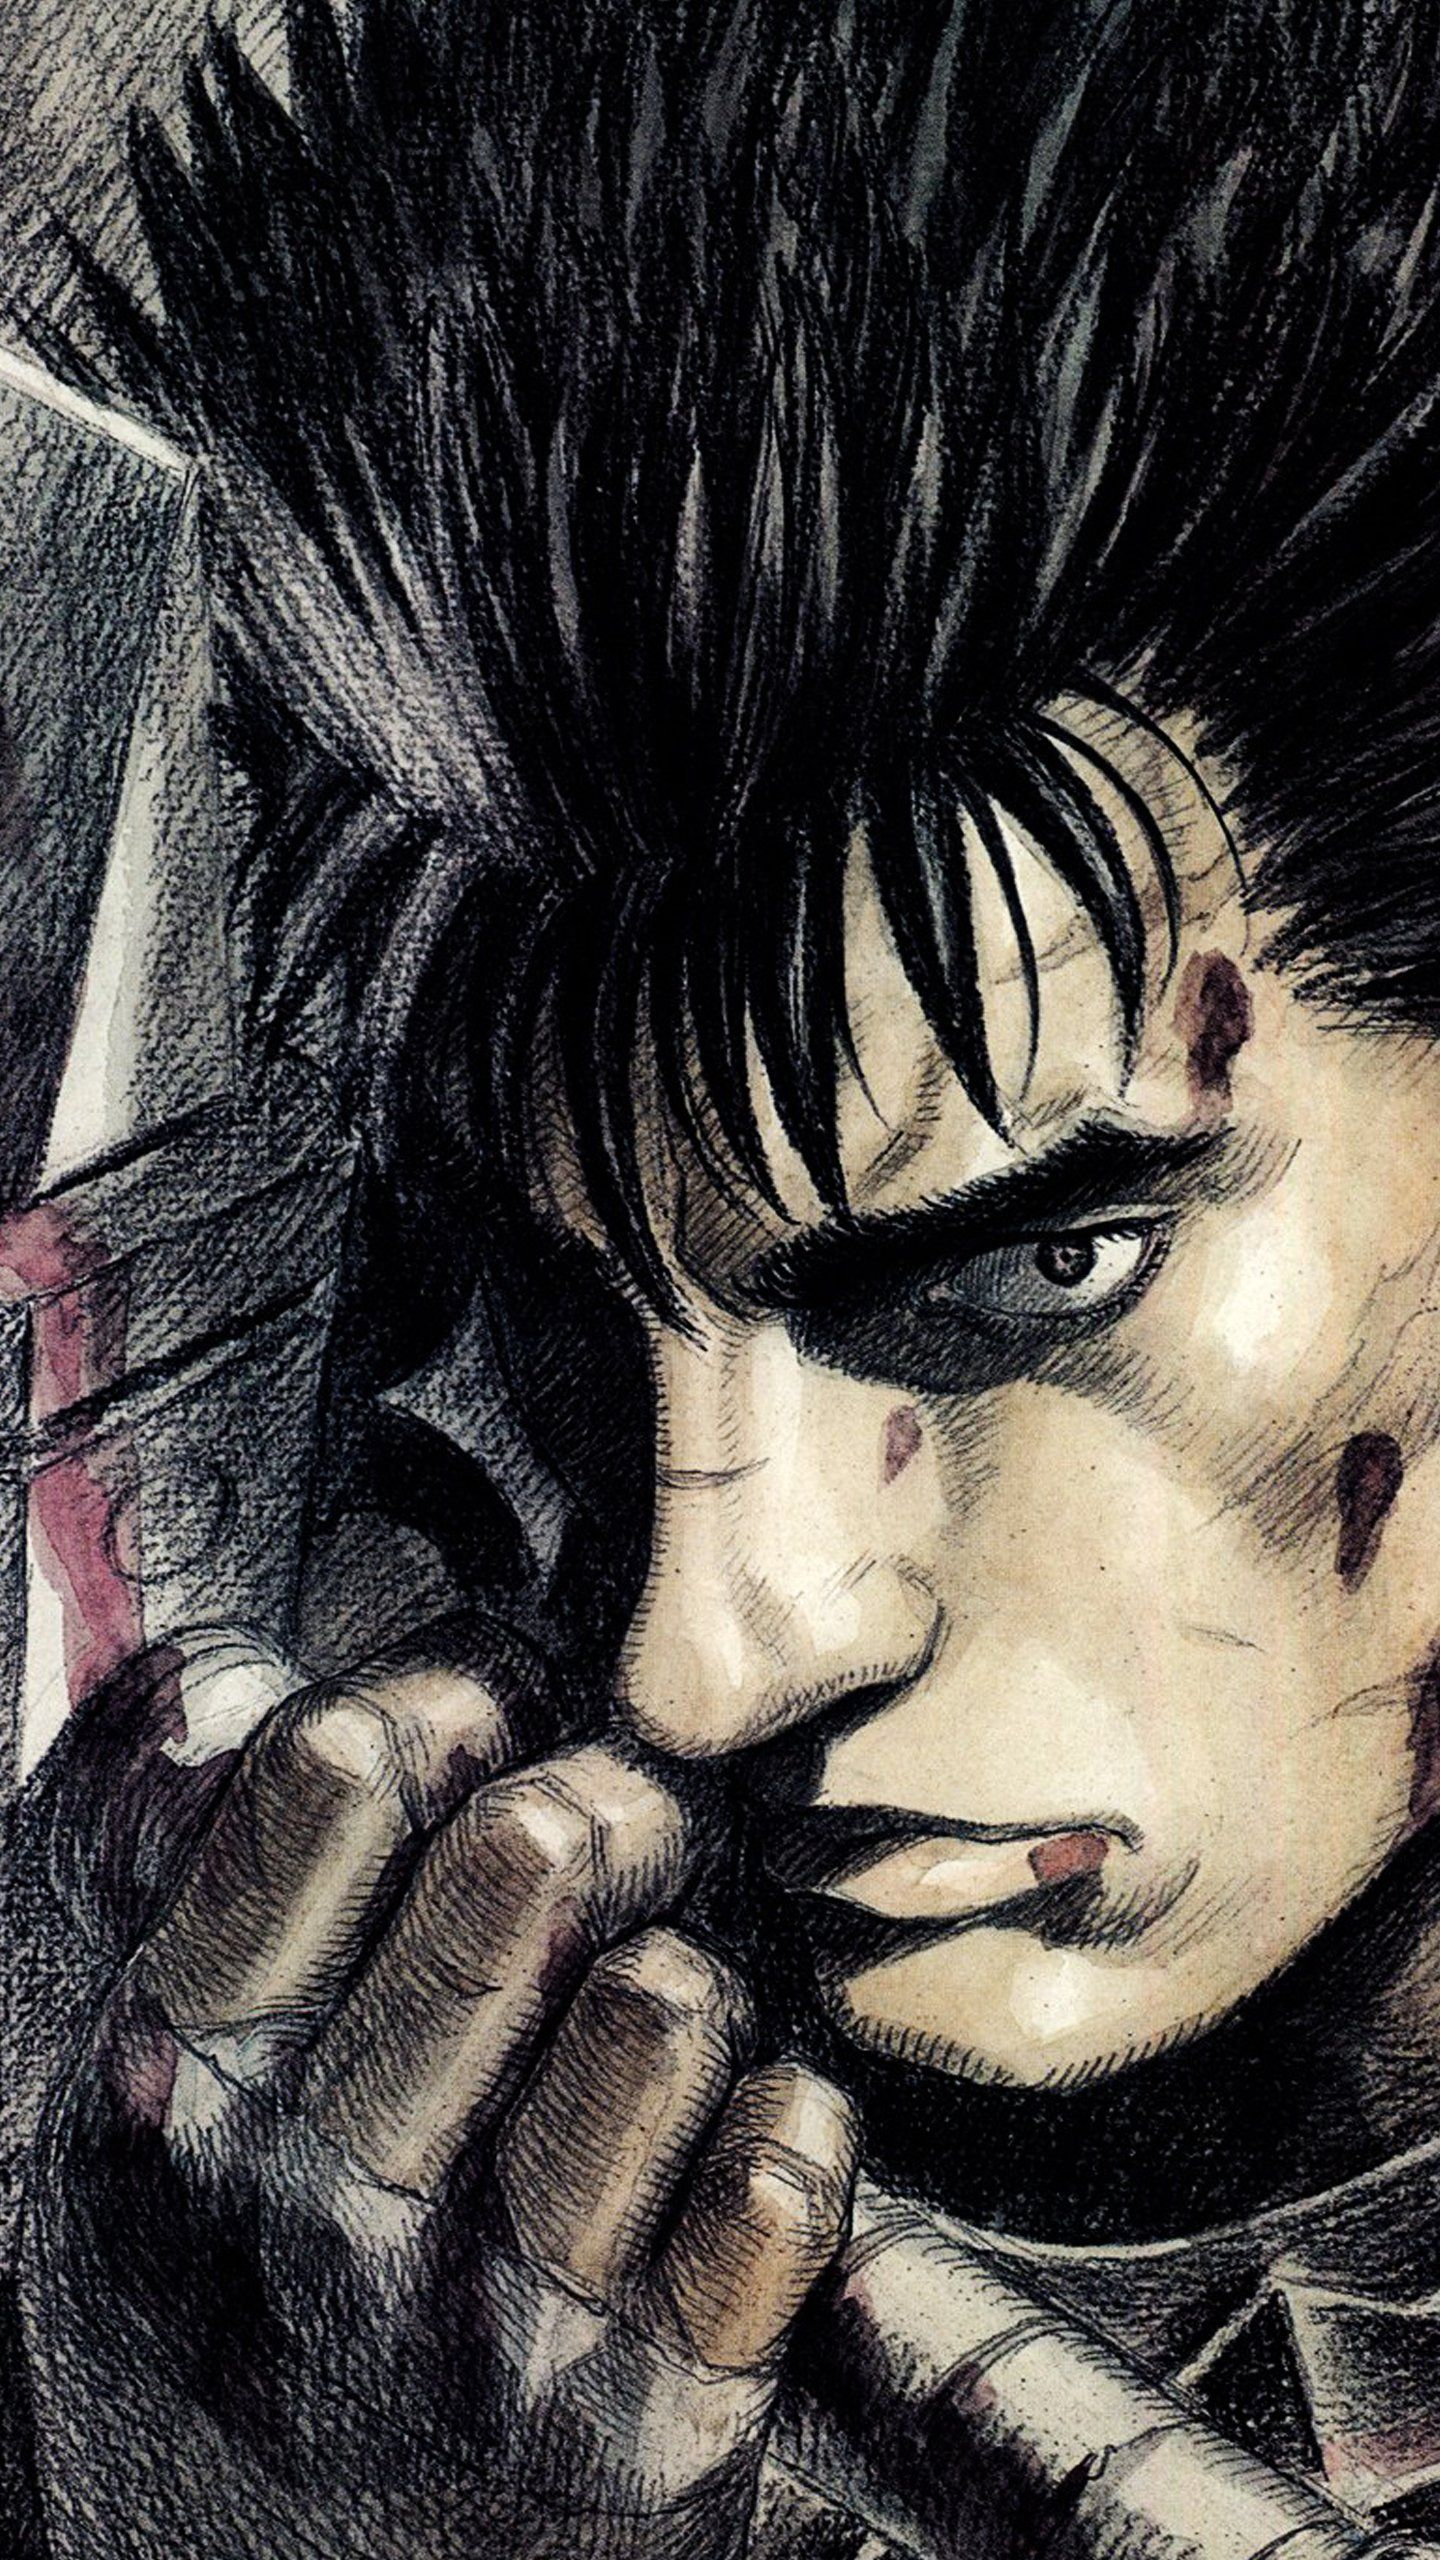 Guts From Berserk Mobilewallpaper Berserk Guts Mobilewallpaper Berserk Concept Art Characters 4k Phone Wallpapers